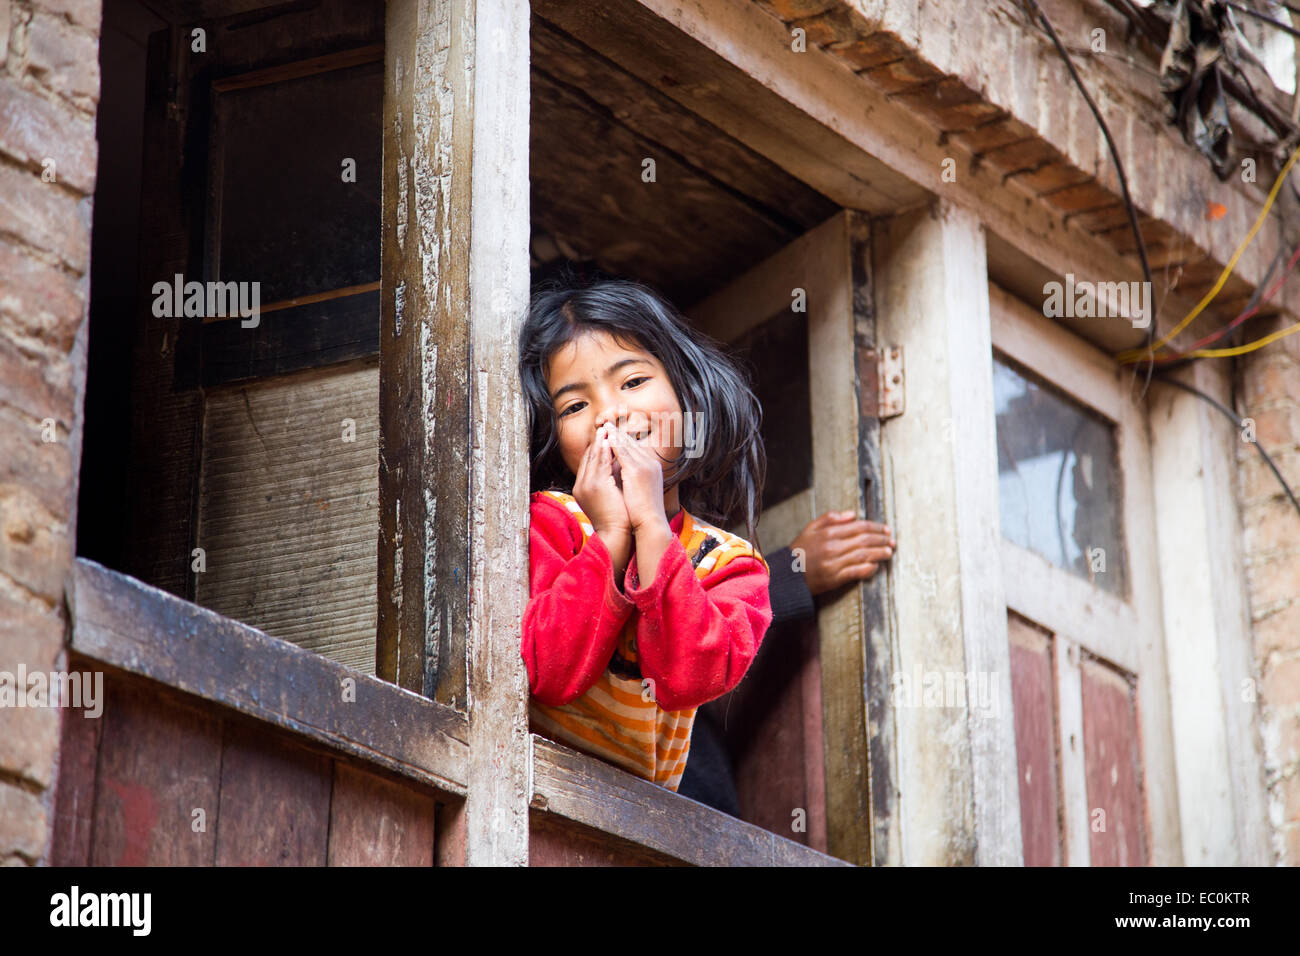 Namaste, young Napali girl in a window in Bhaktapur, Nepal - Stock Image